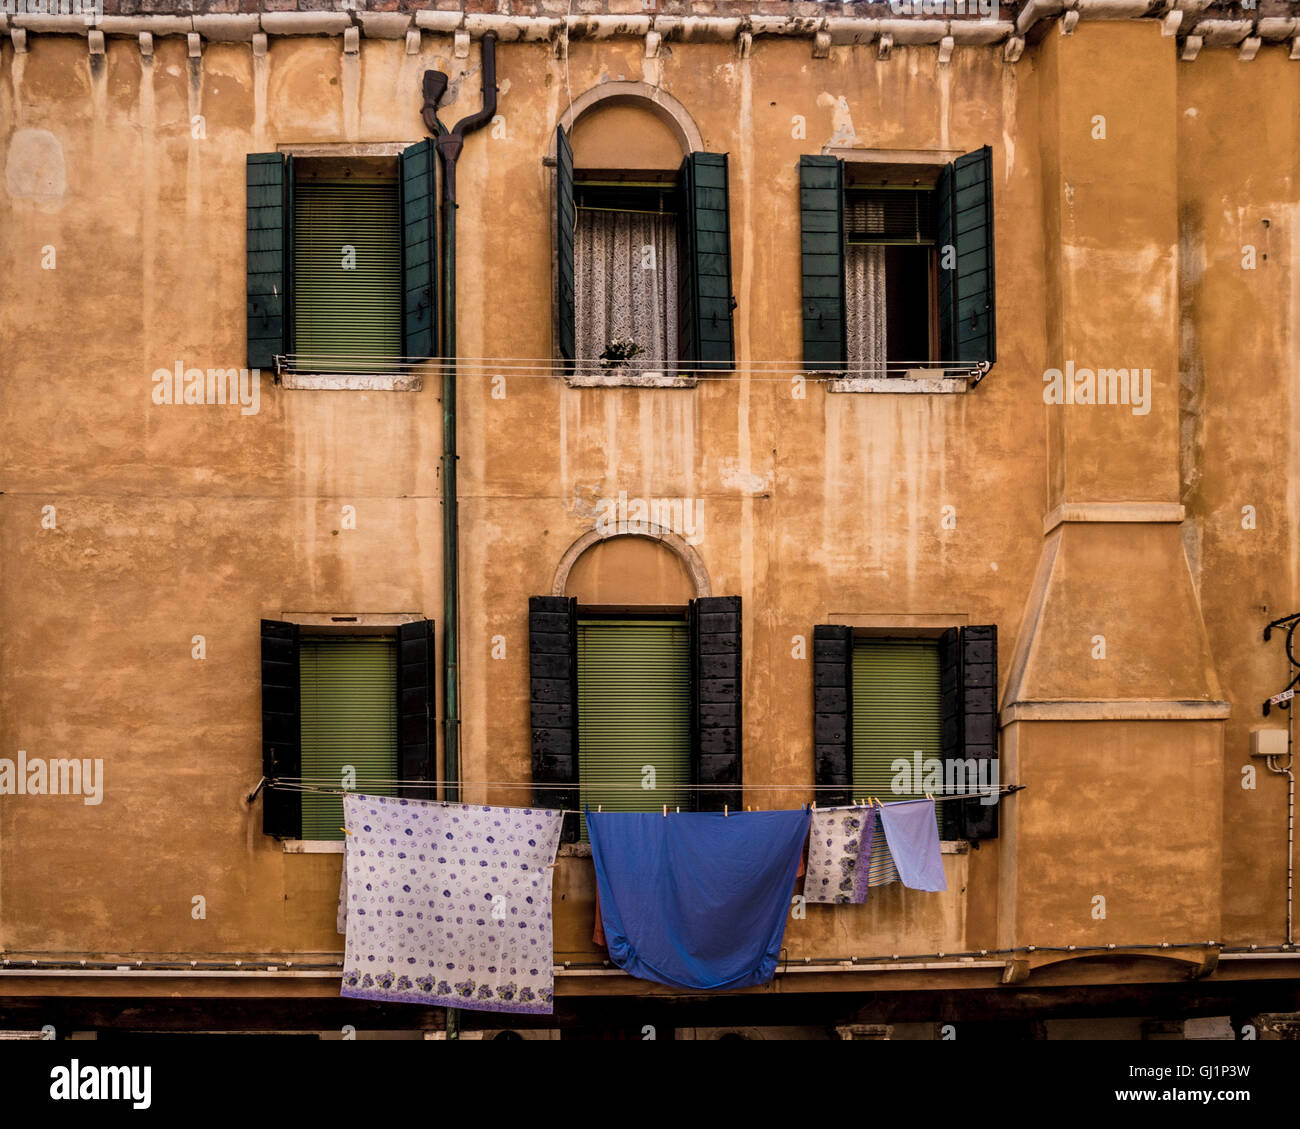 Traditional venetian rendered building. with window shutters, venetian blinds. and laundry hanging from a washing - Stock Image